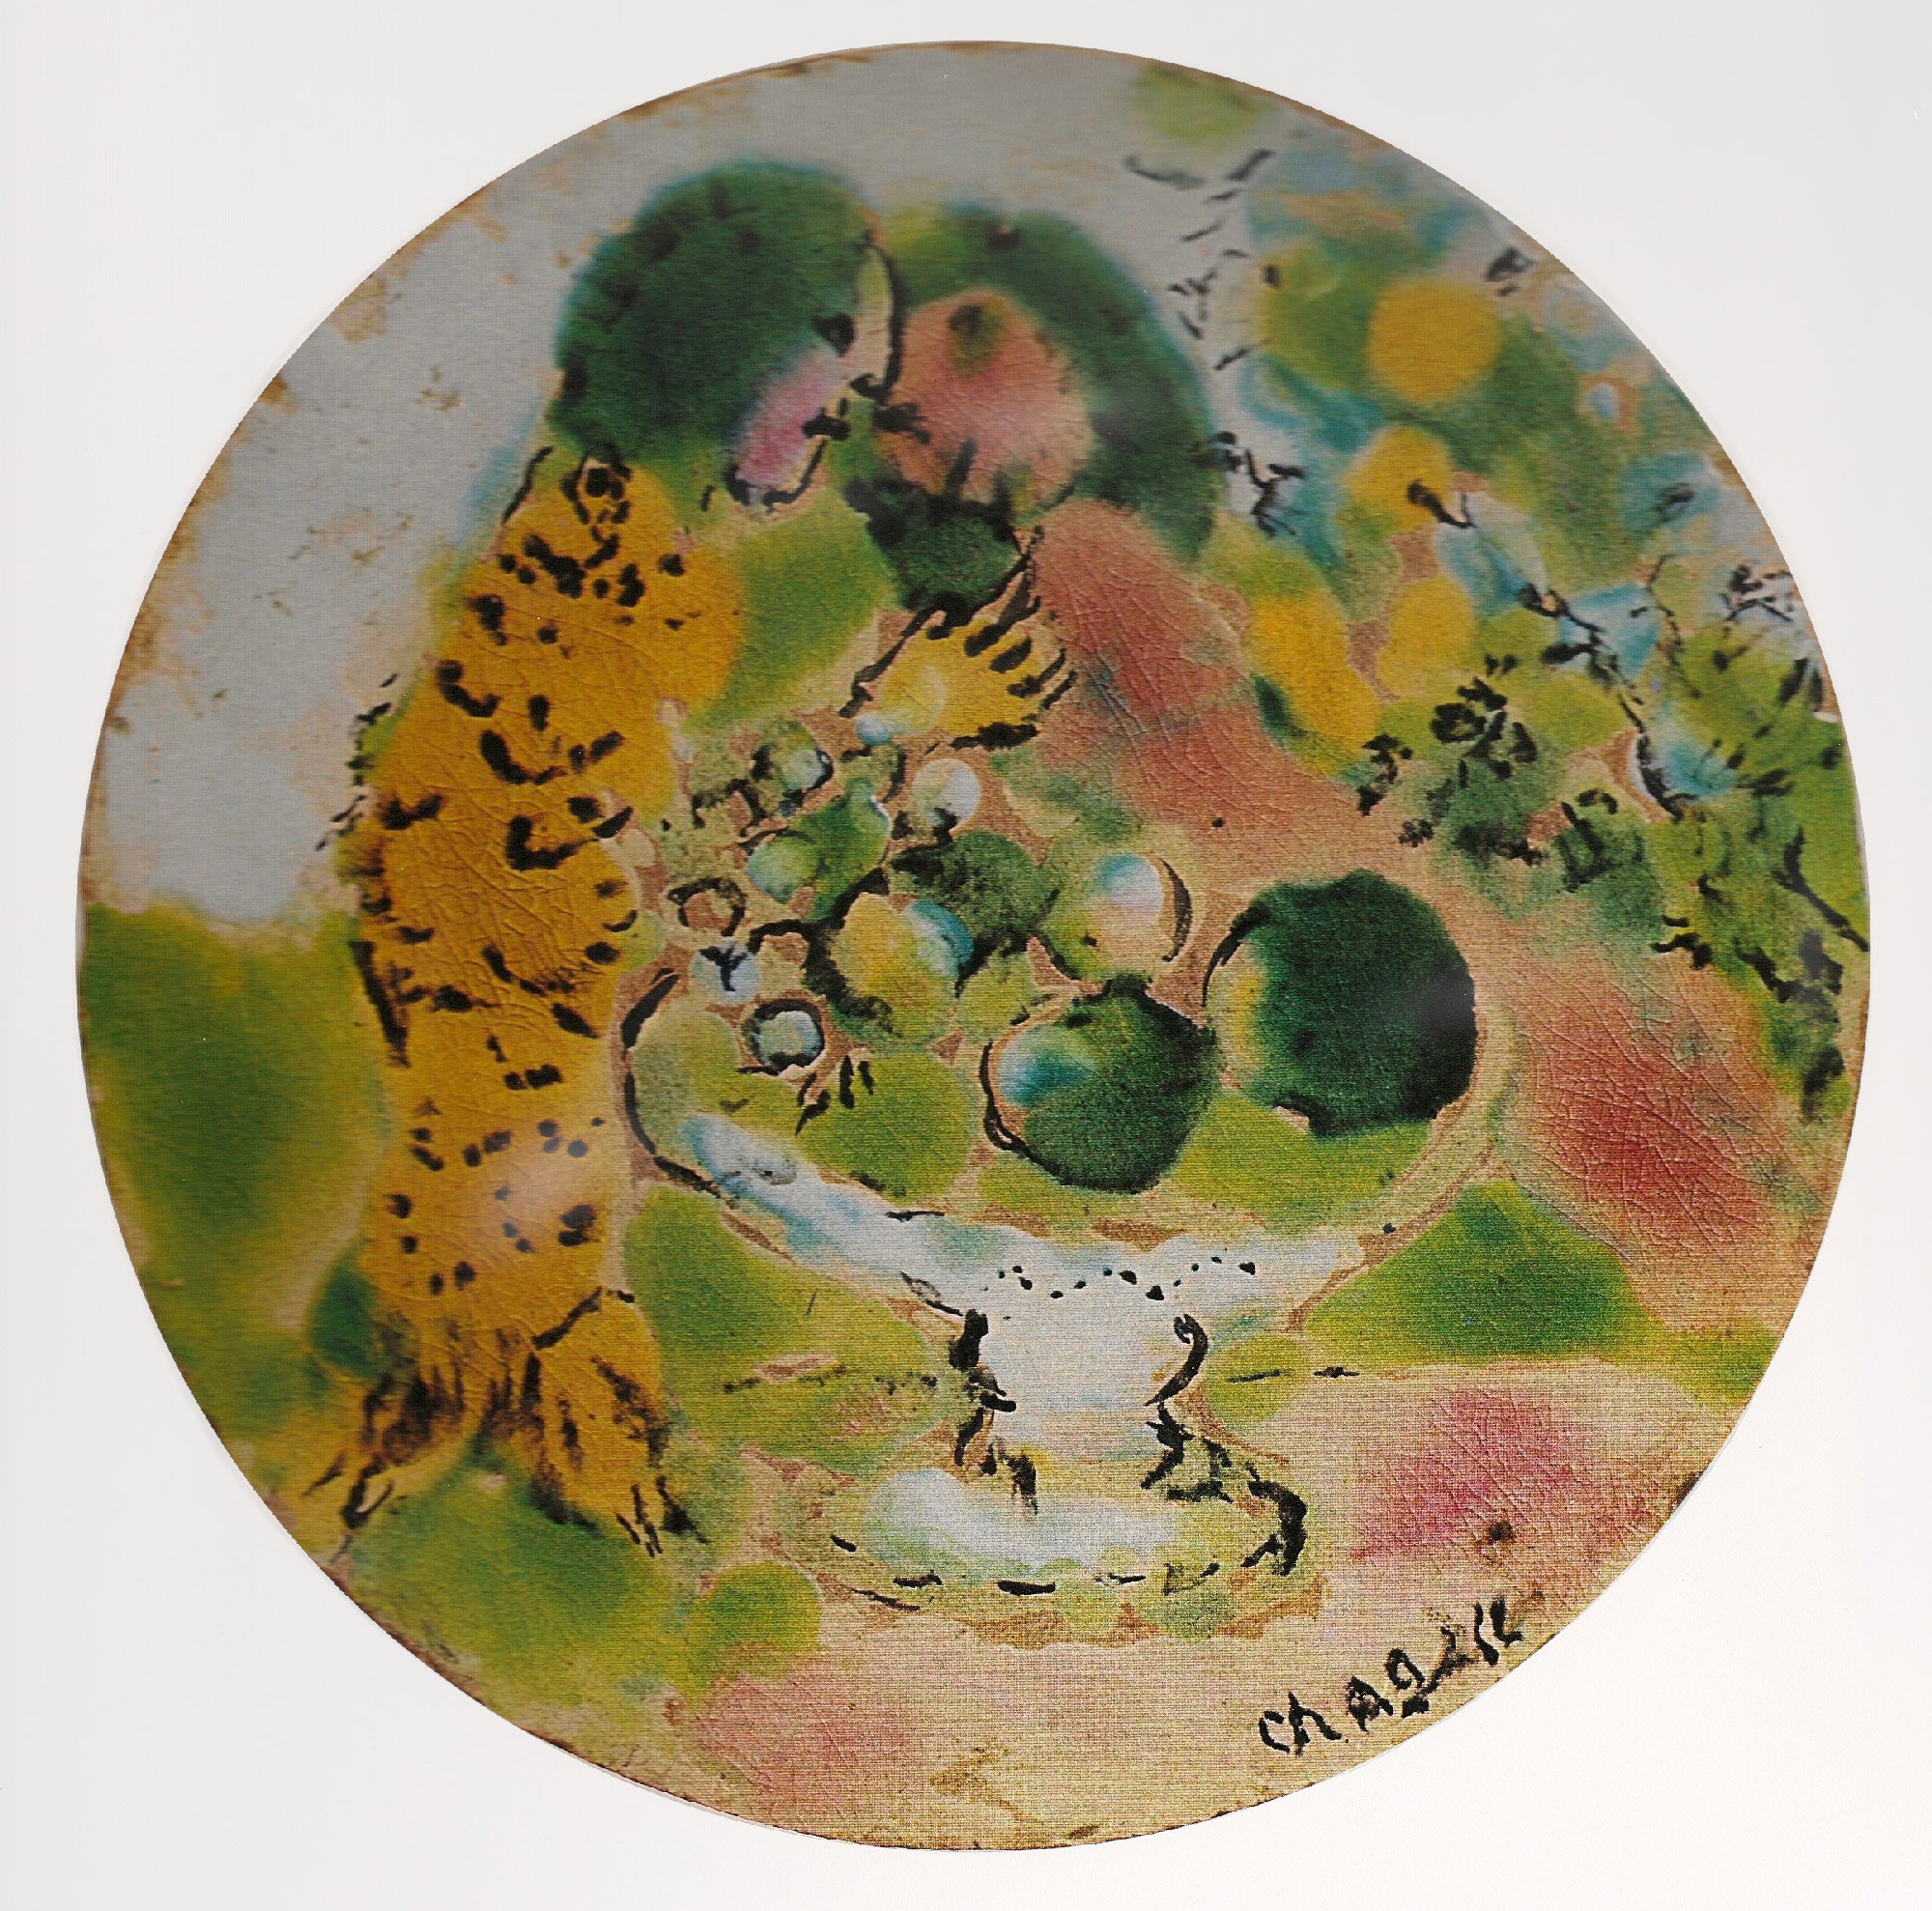 Chagall-Plate-2